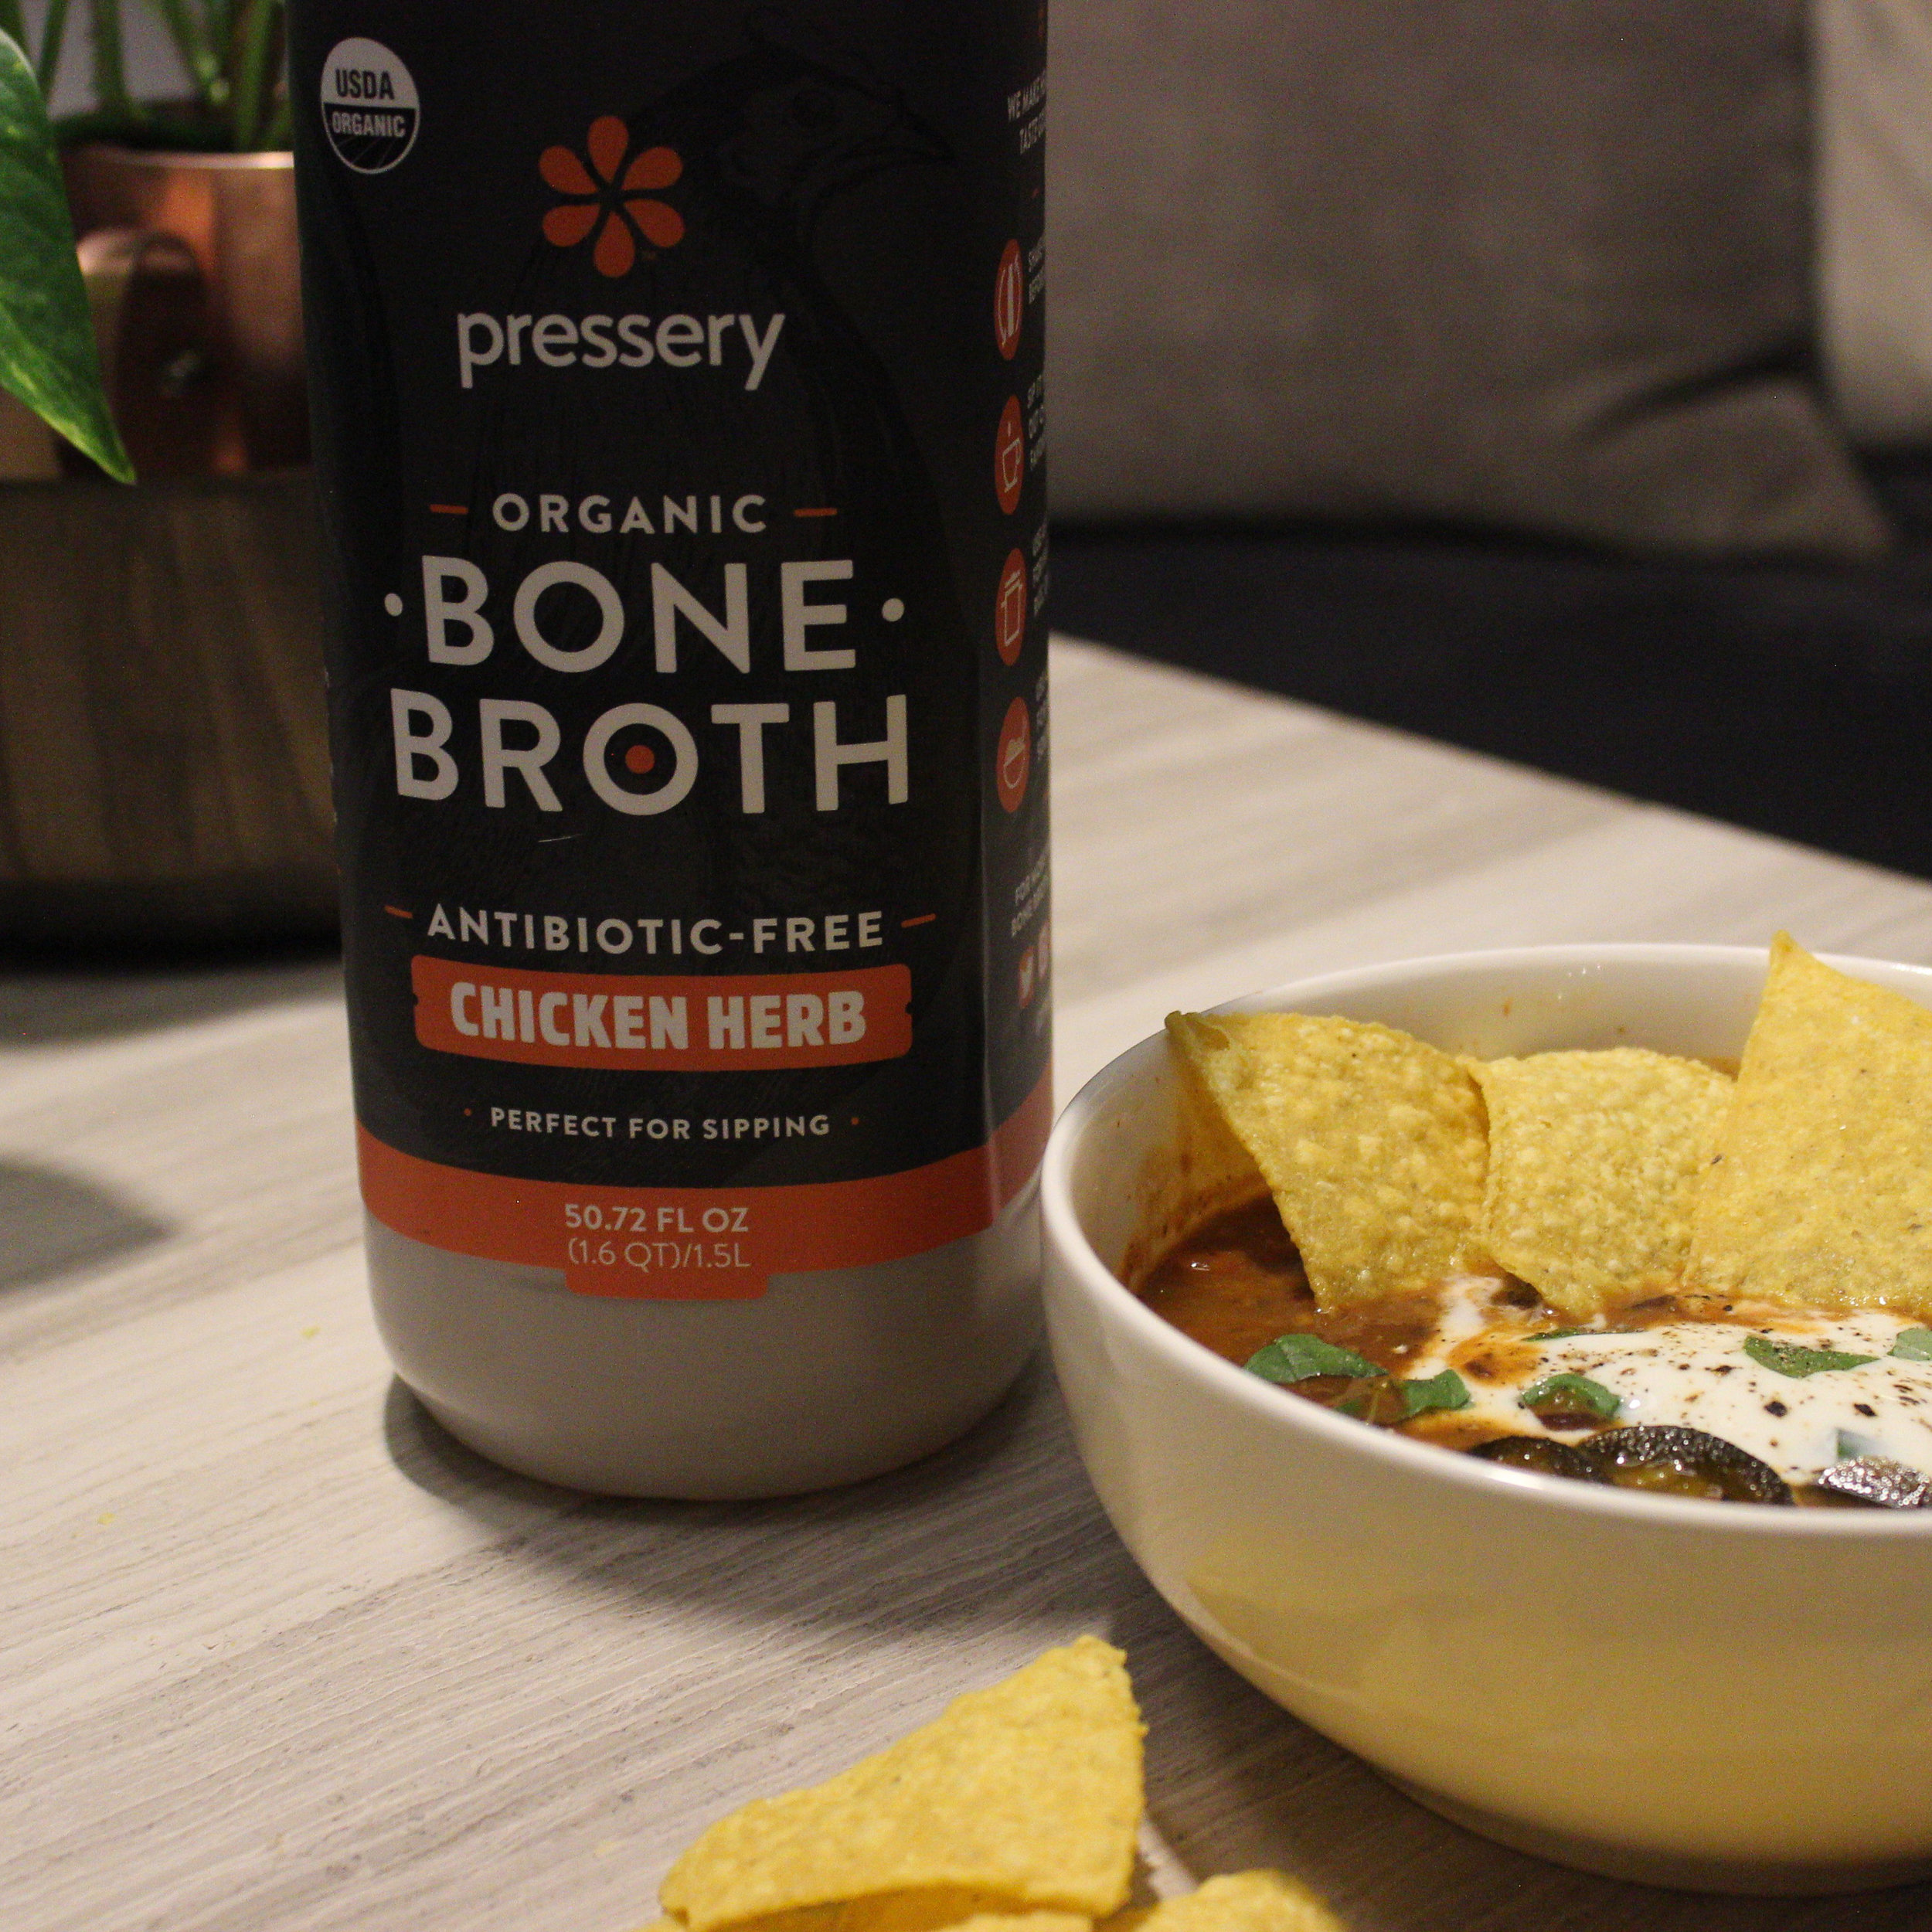 Using fresh bone broth adds flavor and dimension to the dish. If you're using store-bought broth, be sure to look for an organic, antibiotic-free option.